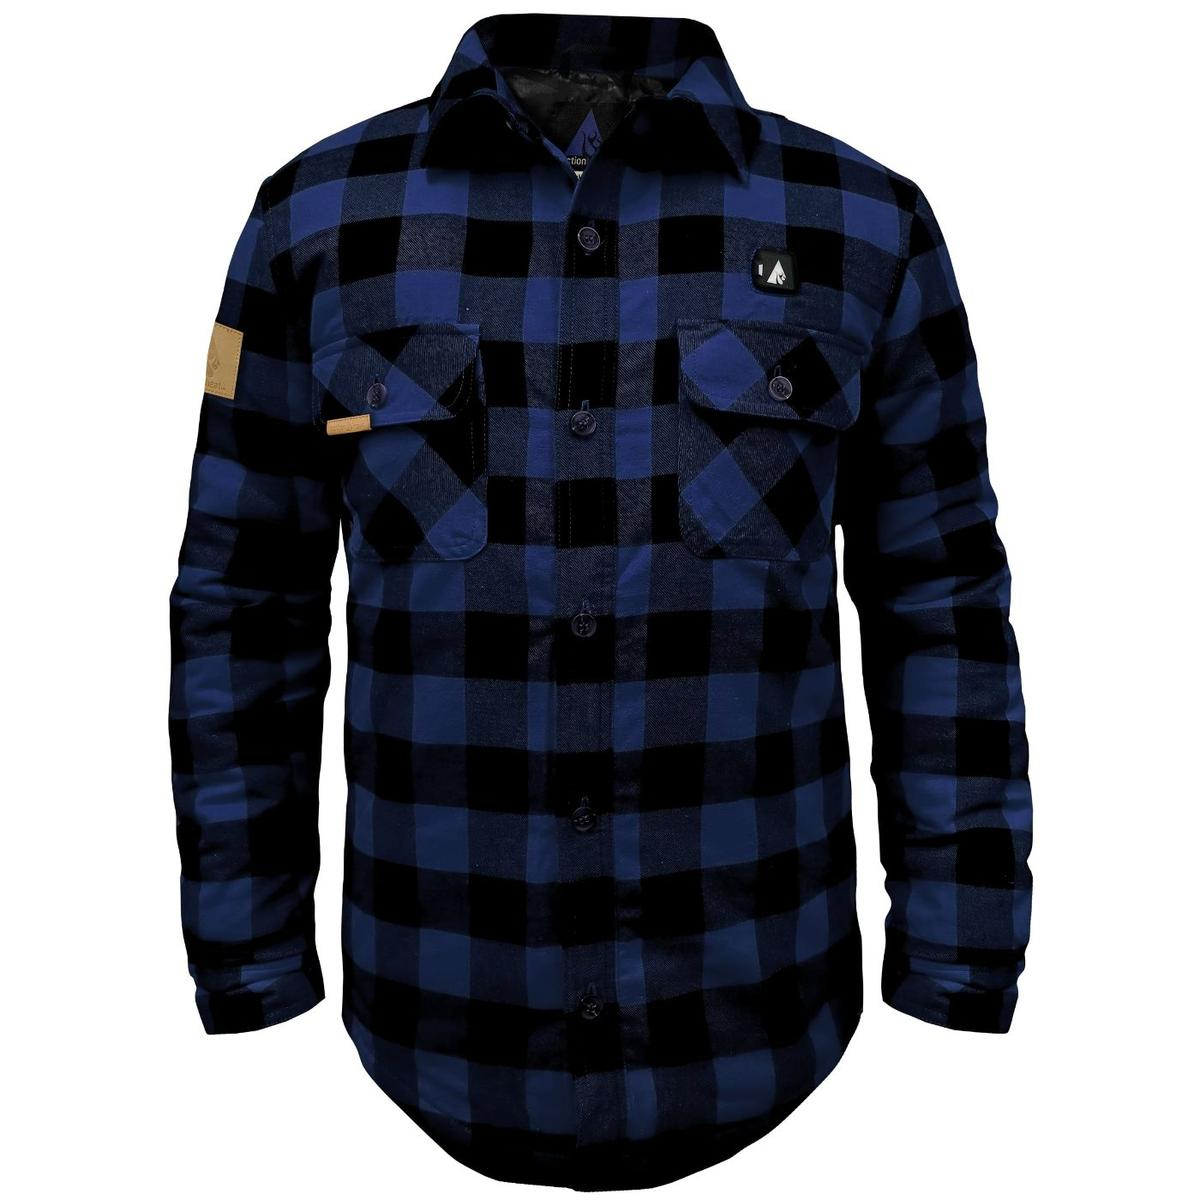 ActionHeat 5V Battery Heated Flannel Shirt - Heated